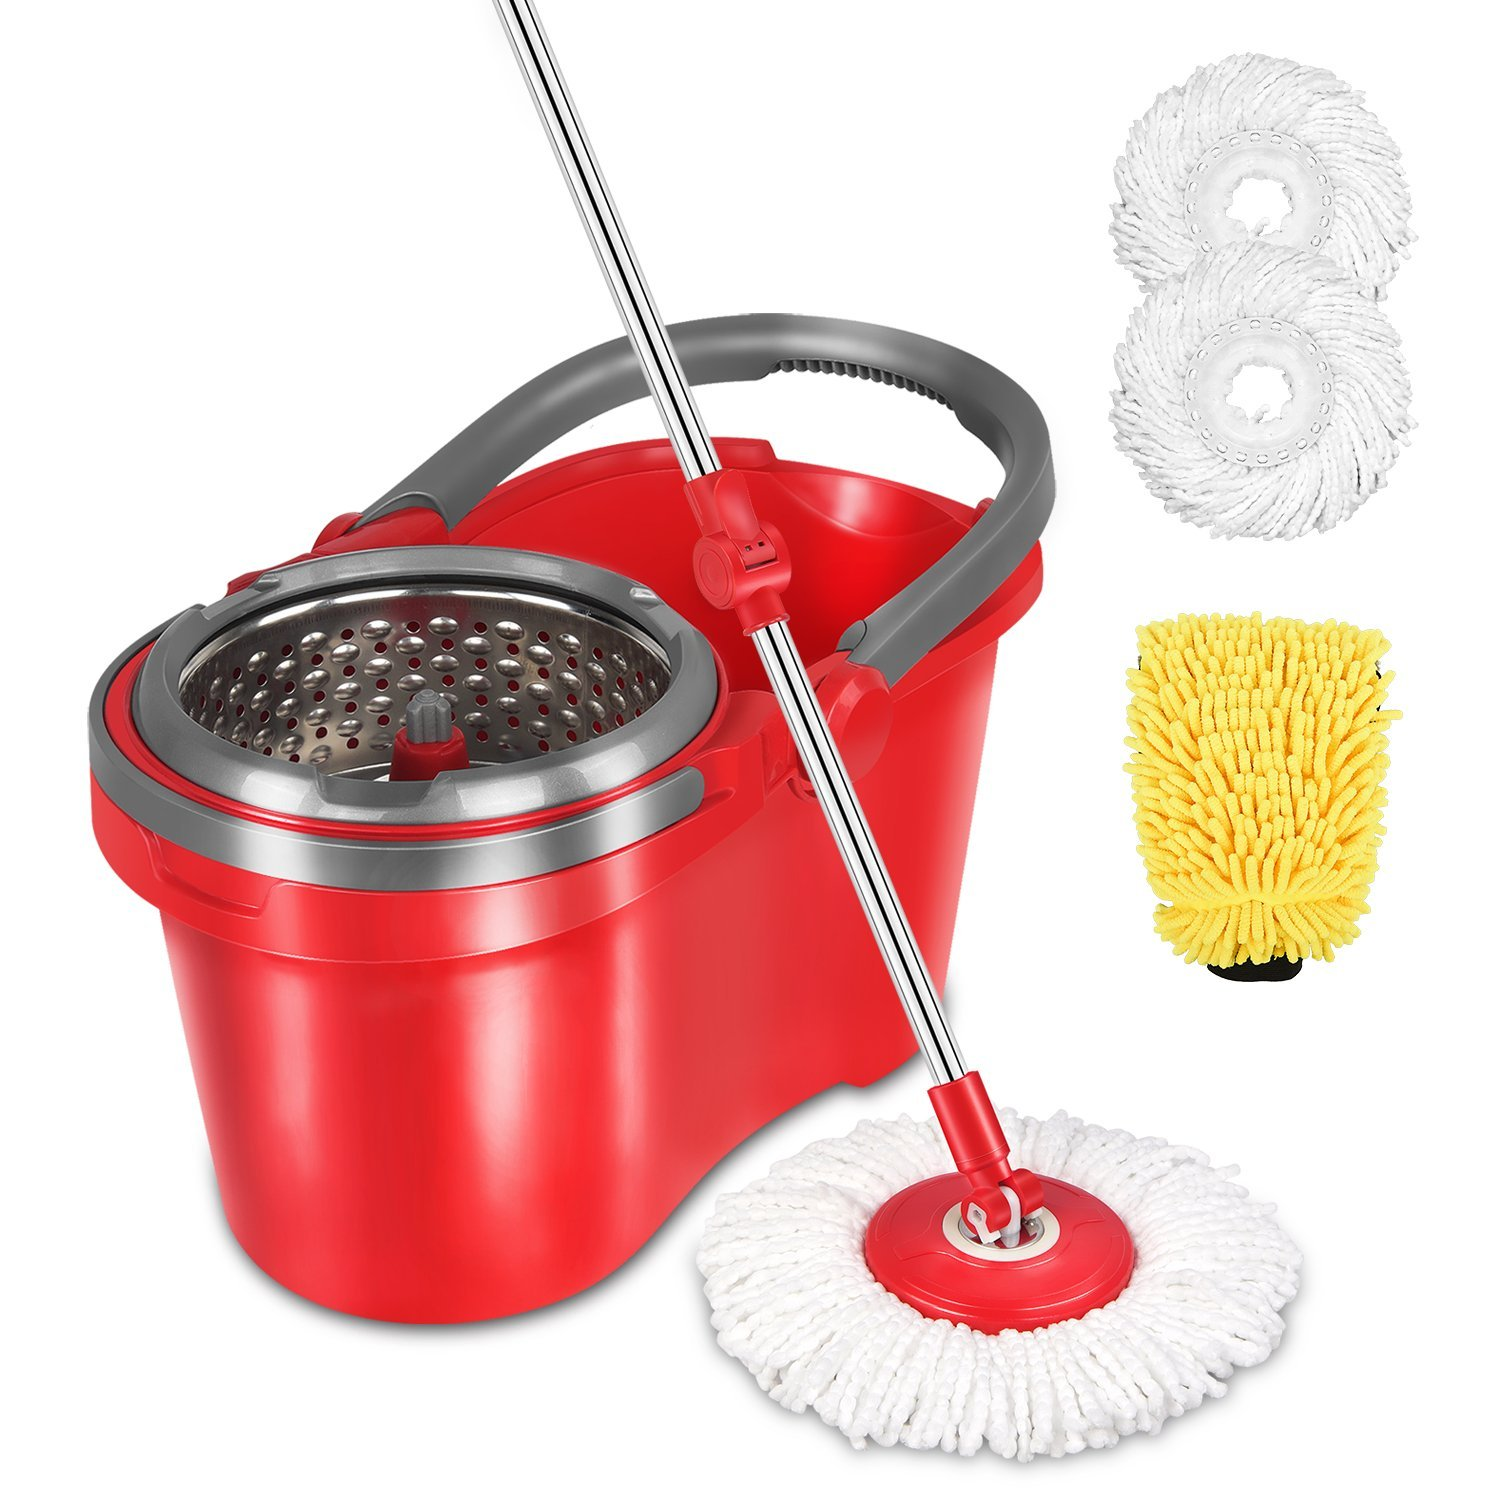 HAPINNEX Spin Wringer Mop Bucket Set - for Home Kitchen Floor Cleaning - Wet/Dry Usage on Hardwood & Tile - Upgraded Self-Balanced Easy Press System With 2 Washable Microfiber Mop Heads Replacements